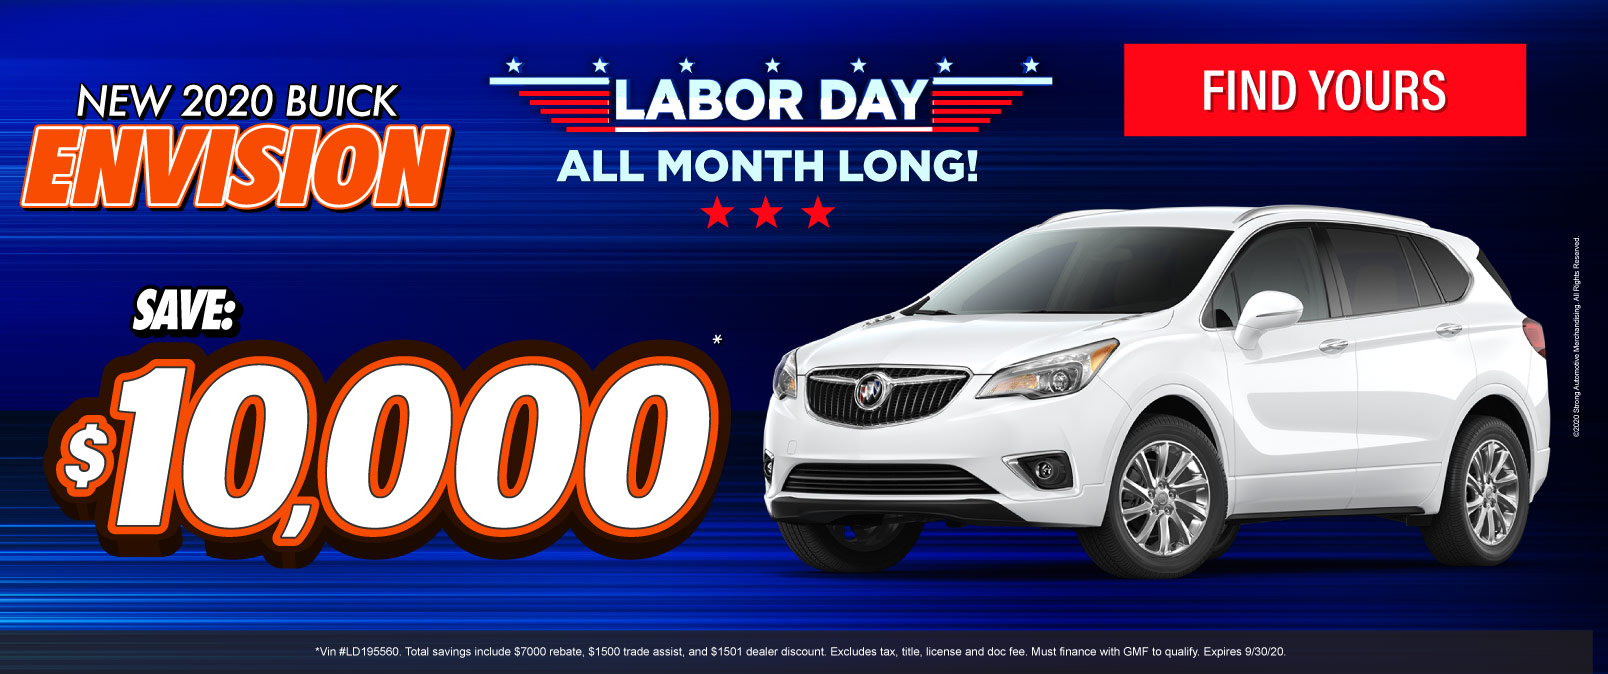 New 2020 Buick Envision - Save $10,000